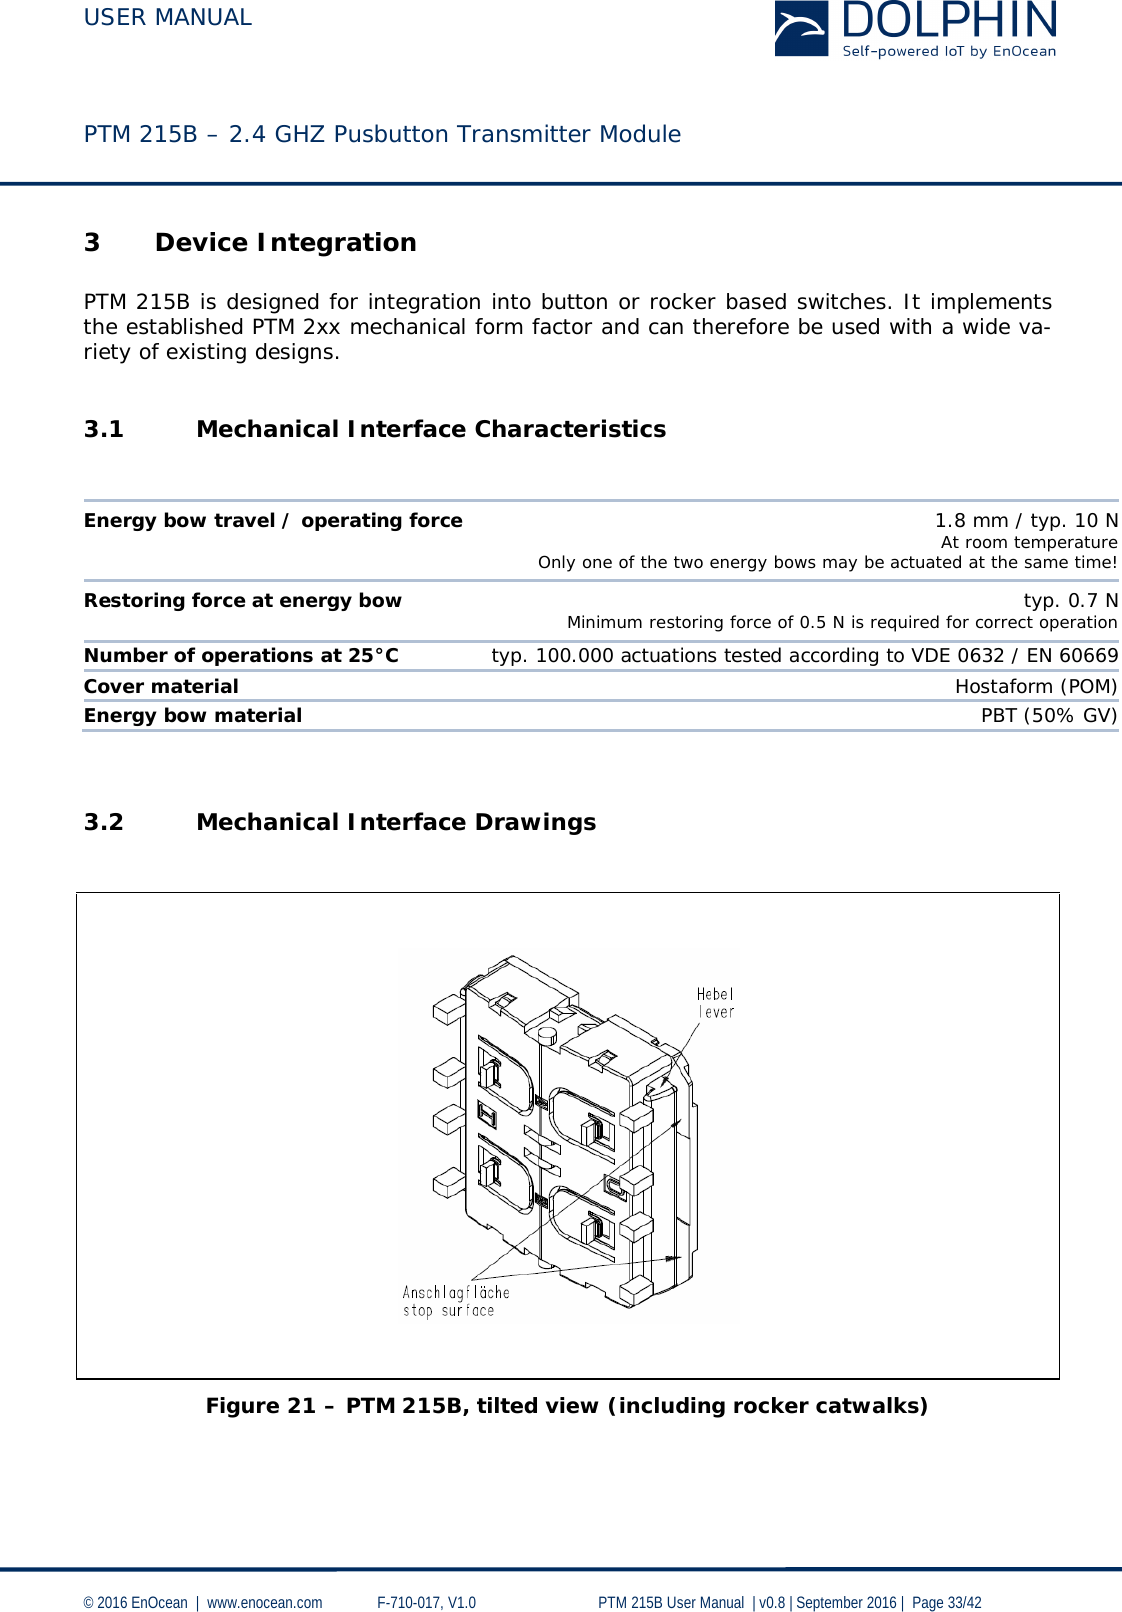 USER MANUAL    PTM 215B – 2.4 GHZ Pusbutton Transmitter Module  © 2016 EnOcean     www.enocean.com   F-710-017, V1.0        PTM 215B User Manual    v0.8   September 2016    Page 33/42  3 Device Integration  PTM 215B is designed for integration into button or rocker based switches. It implements the established PTM 2xx mechanical form factor and can therefore be used with a wide va-riety of existing designs.  3.1 Mechanical Interface Characteristics   Energy bow travel / operating force 1.8 mm / typ. 10 N  At room temperature  Only one of the two energy bows may be actuated at the same time! Restoring force at energy bow typ. 0.7 N  Minimum restoring force of 0.5 N is required for correct operation Number of operations at 25°C typ. 100.000 actuations tested according to VDE 0632 / EN 60669 Cover material Hostaform (POM) Energy bow material PBT (50% GV)   3.2 Mechanical Interface Drawings      Figure 21 – PTM 215B, tilted view (including rocker catwalks)